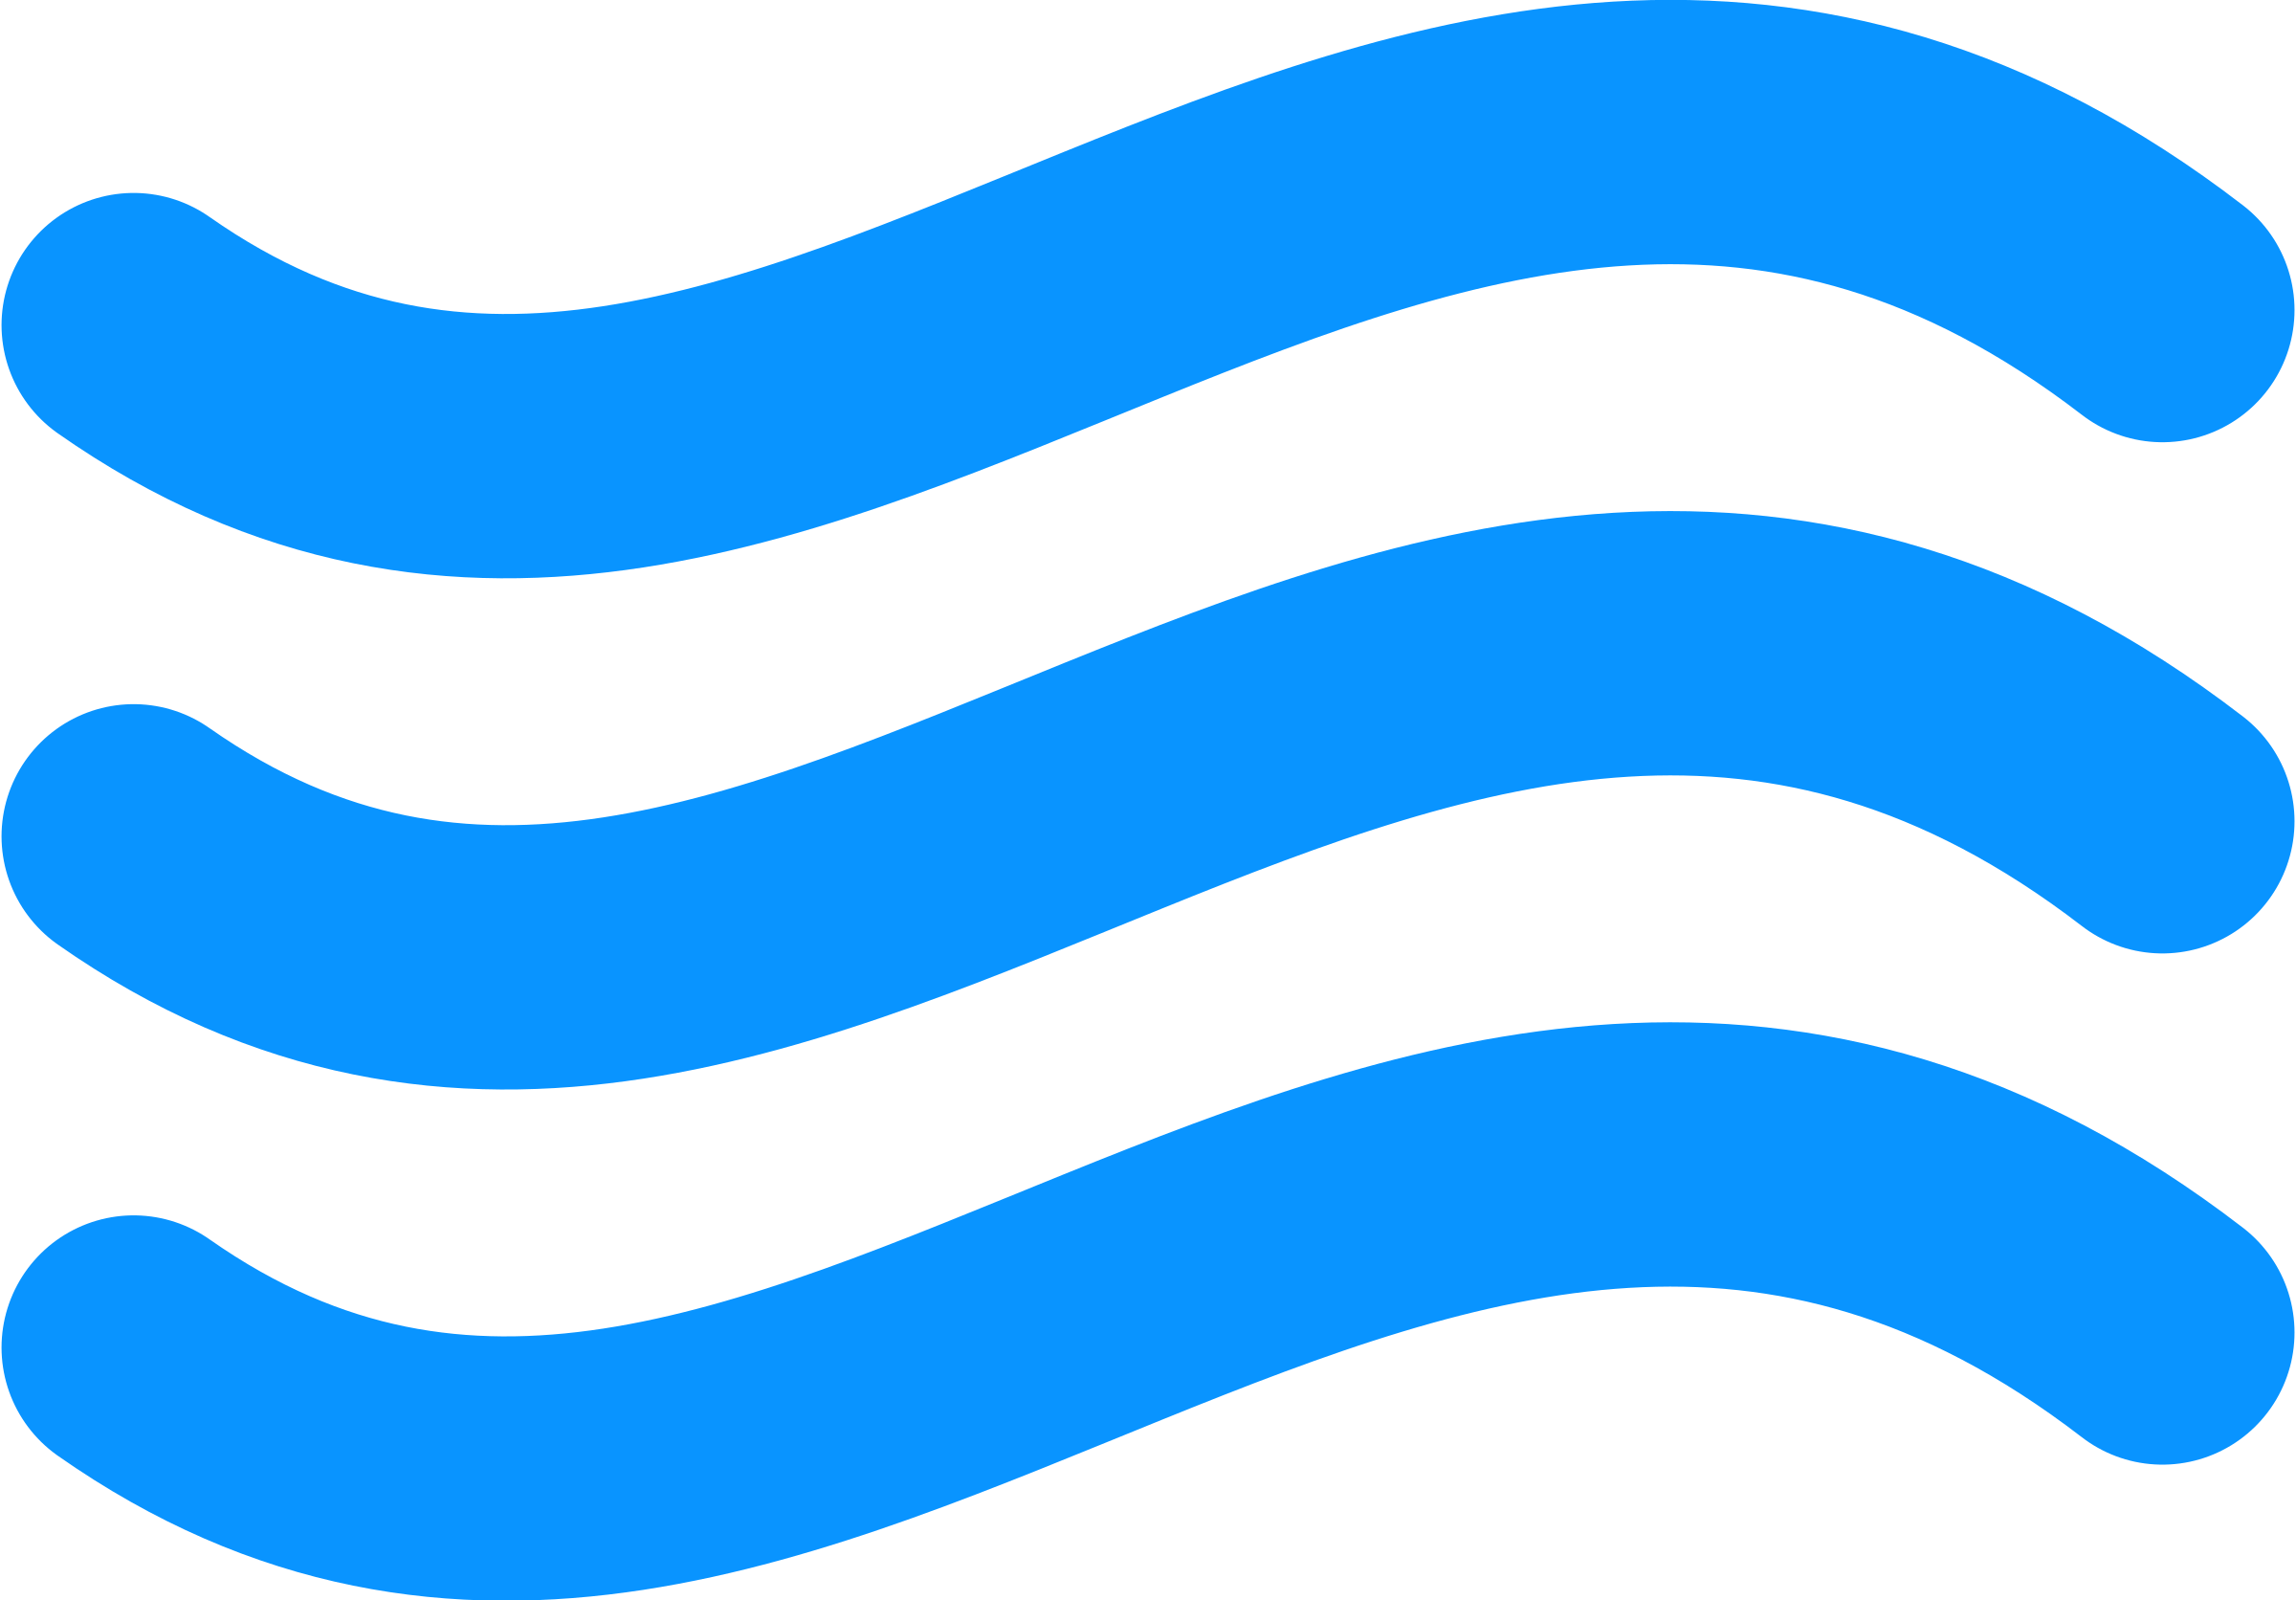 Simple Water Icon 3 by qubodup